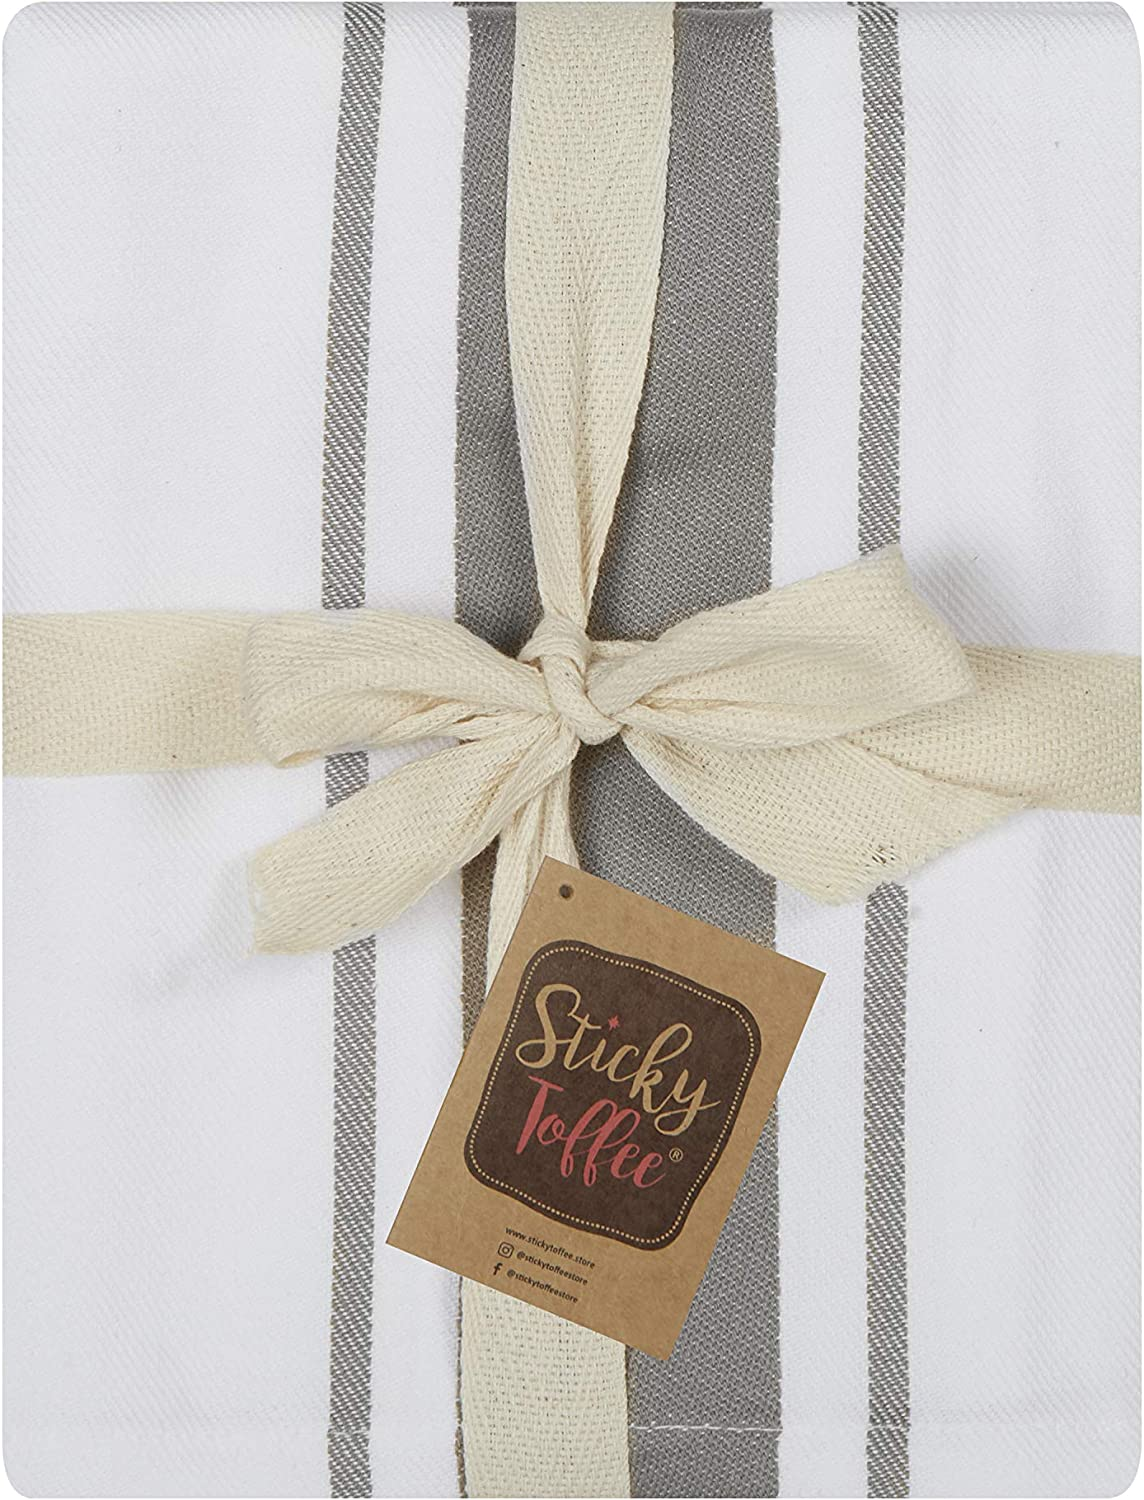 Sticky Toffee 100/% Cotton Tea Towels 5 Pack of Kitchen Towels 50 x 70 cms Black| Absorbent Restaurant Bar Glass Kitchen Cloths